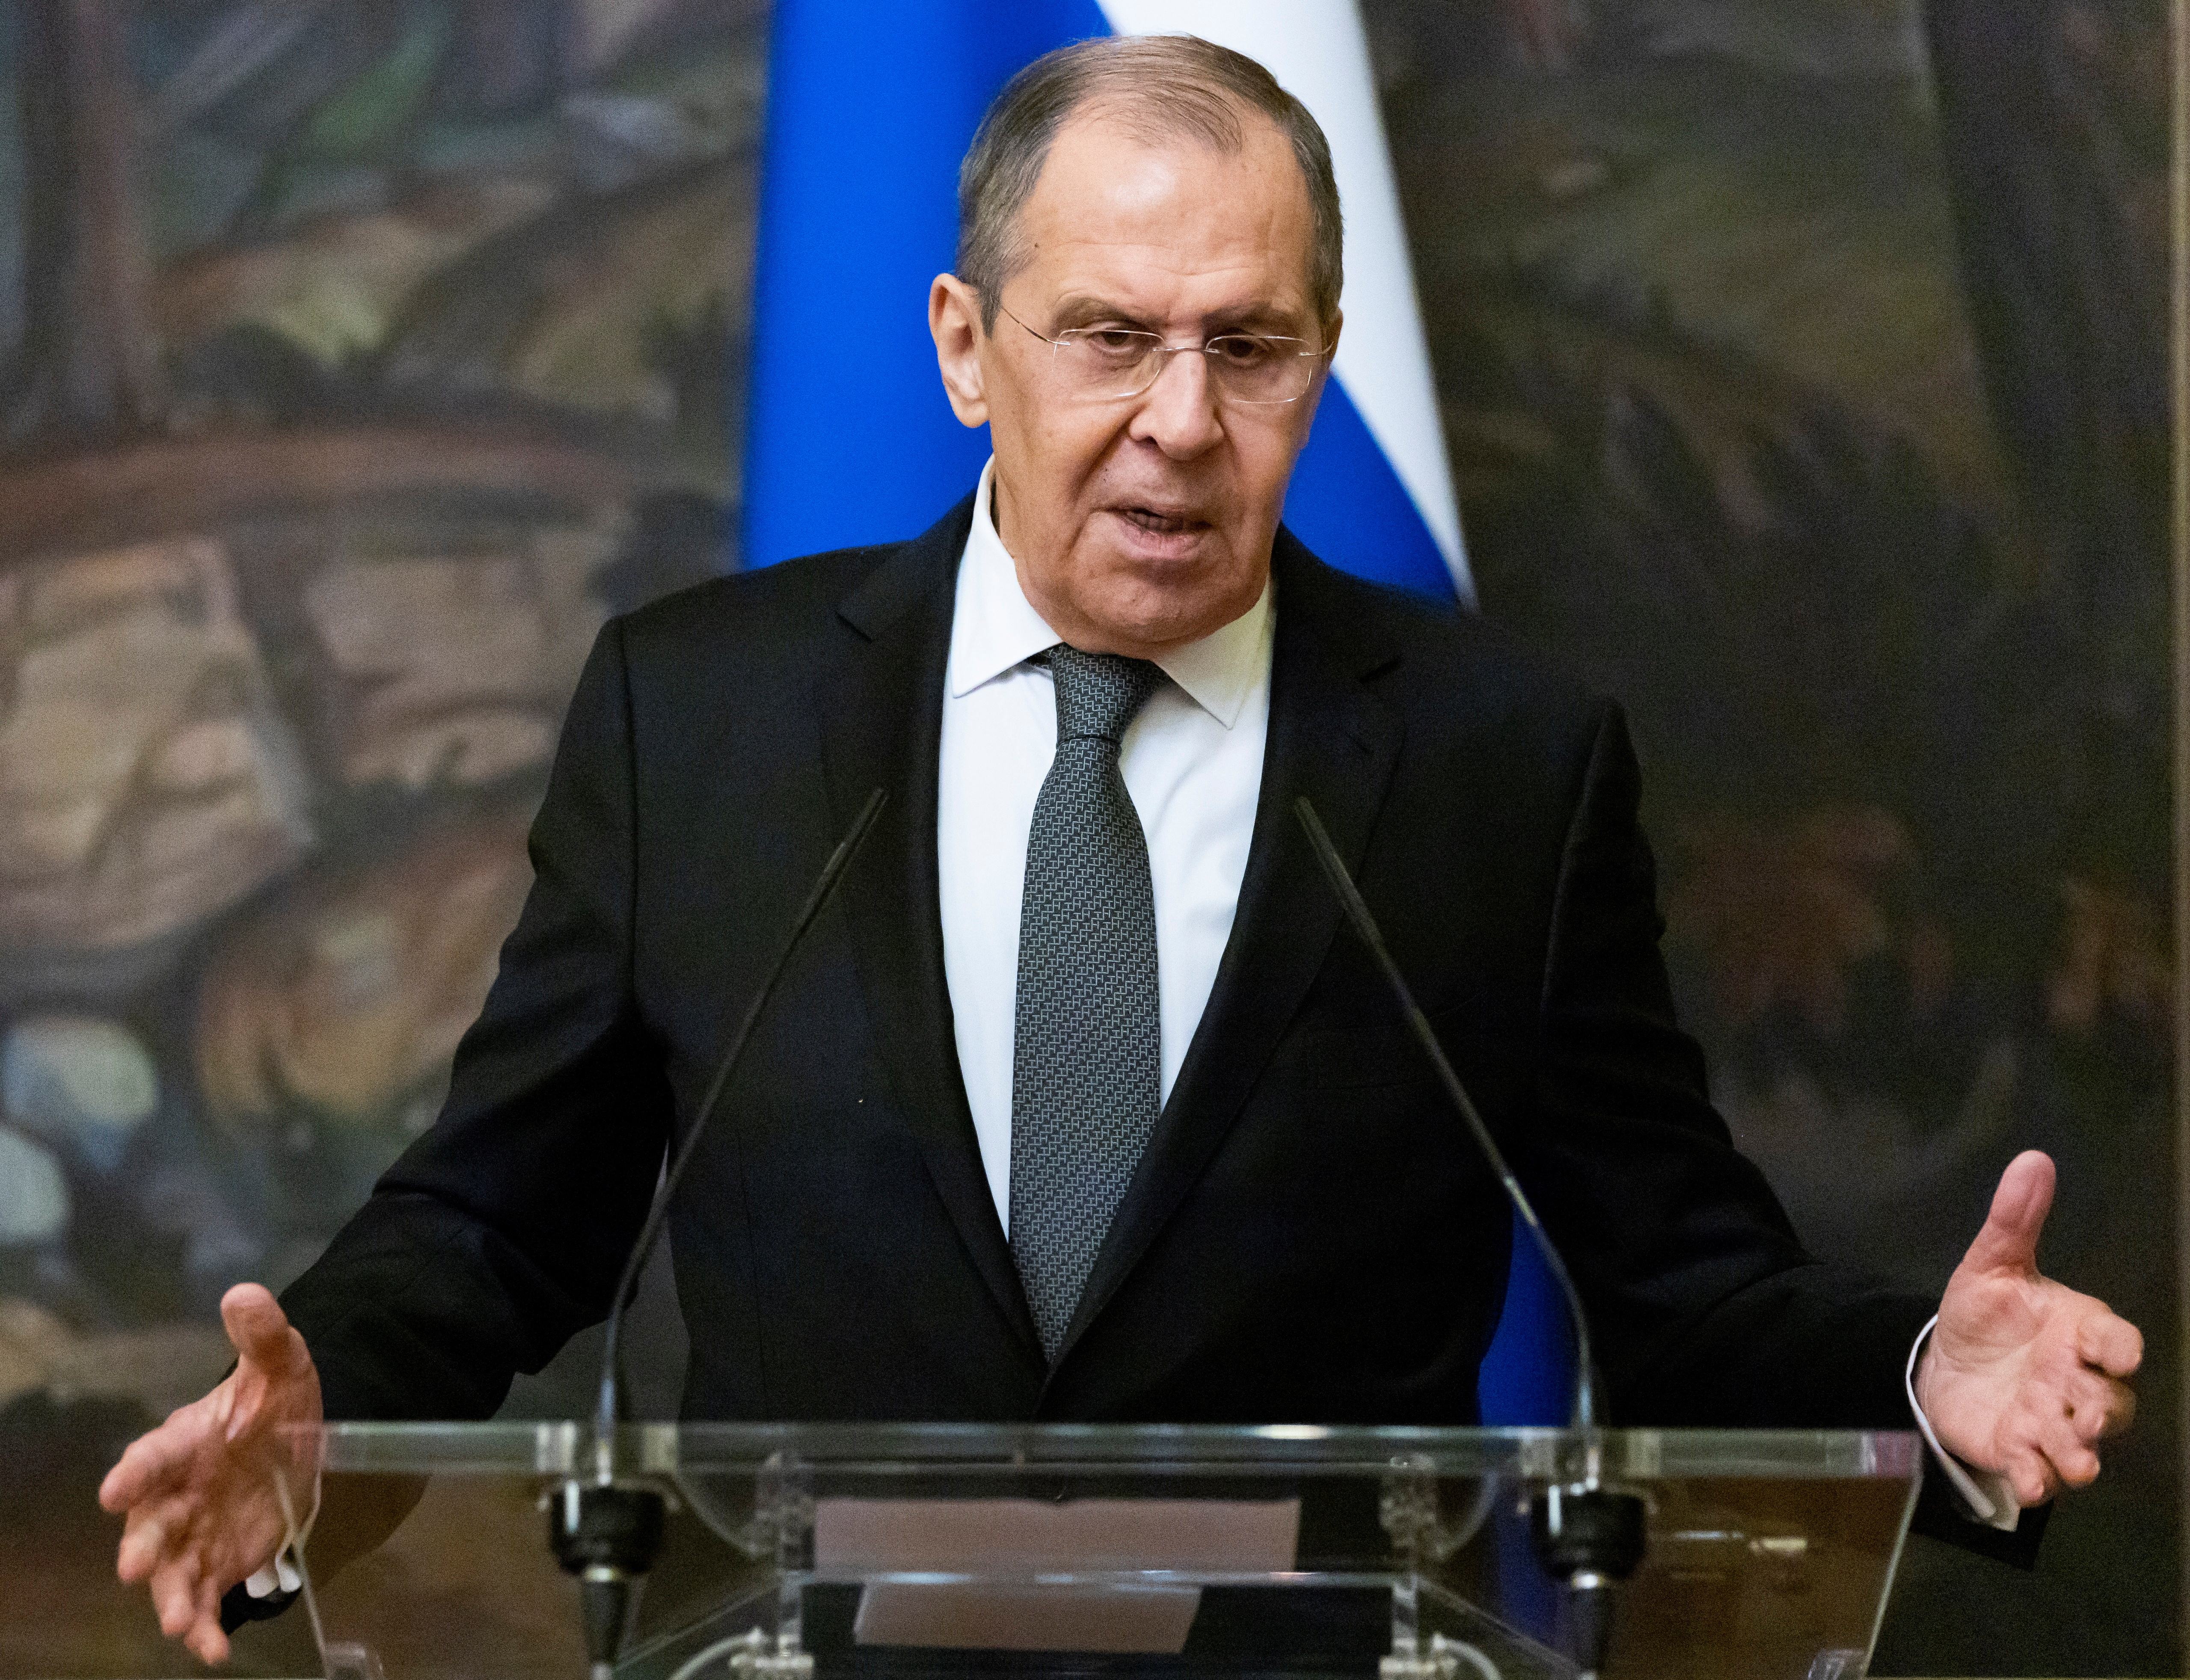 Russian Foreign Minister Sergei Lavrov speaks during a news conference in Moscow, Russia May 5, 2021. Alexander Zemlianichenko/Pool via REUTERS